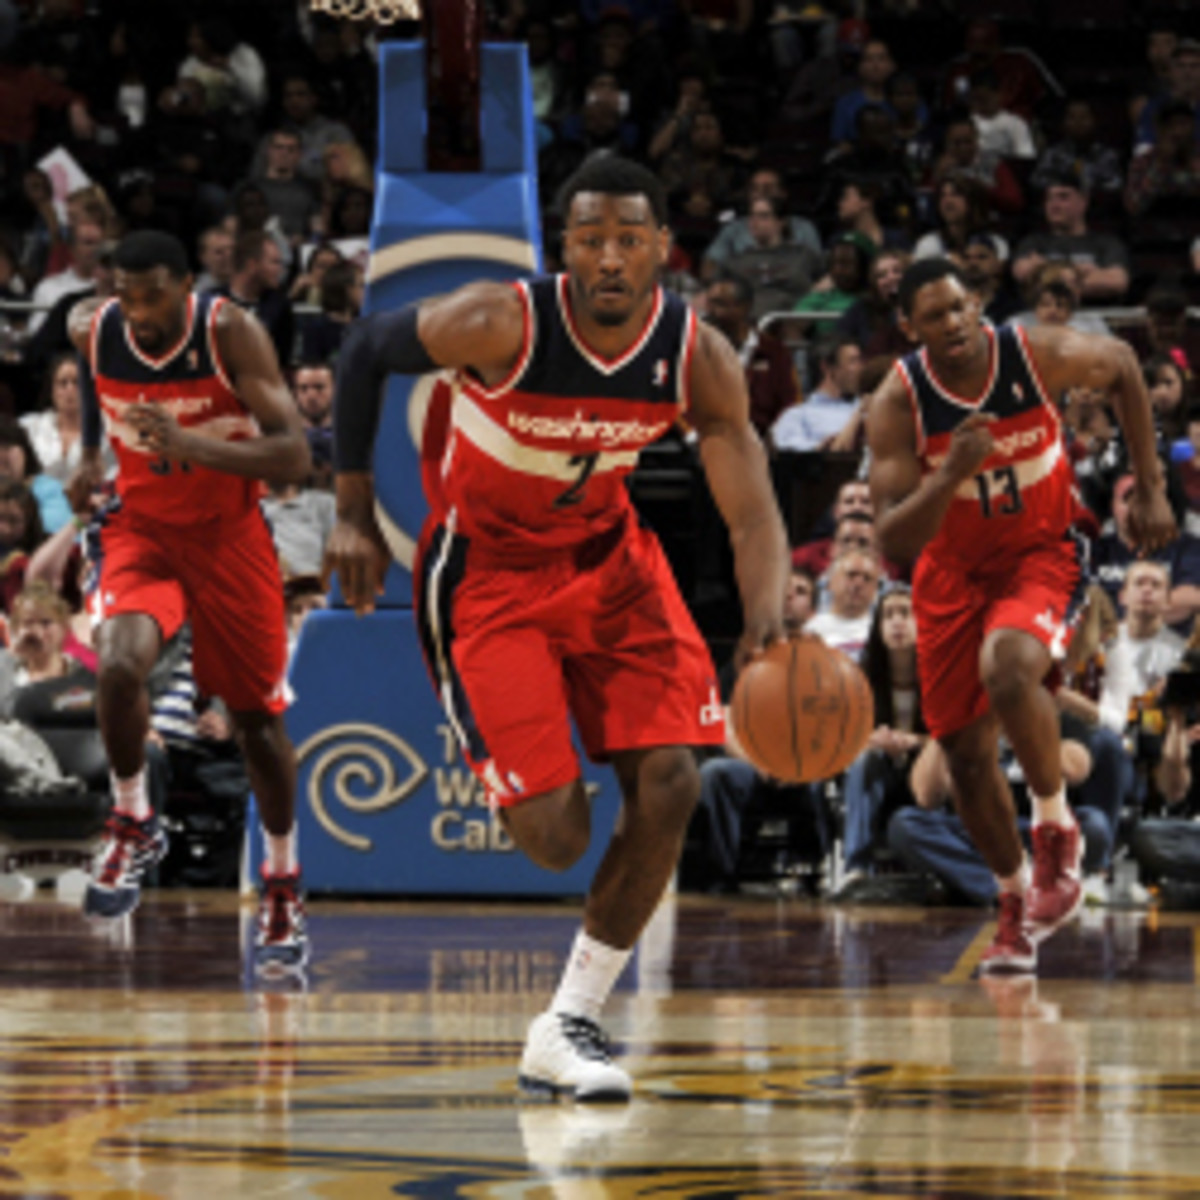 John Wall thinks he's the NBA's fastest player; he considered Russell Westbrook, Derrick Rose, Mike Conley and Ty Lawson to be quick also. (David Liam Kyle/Getty Images)